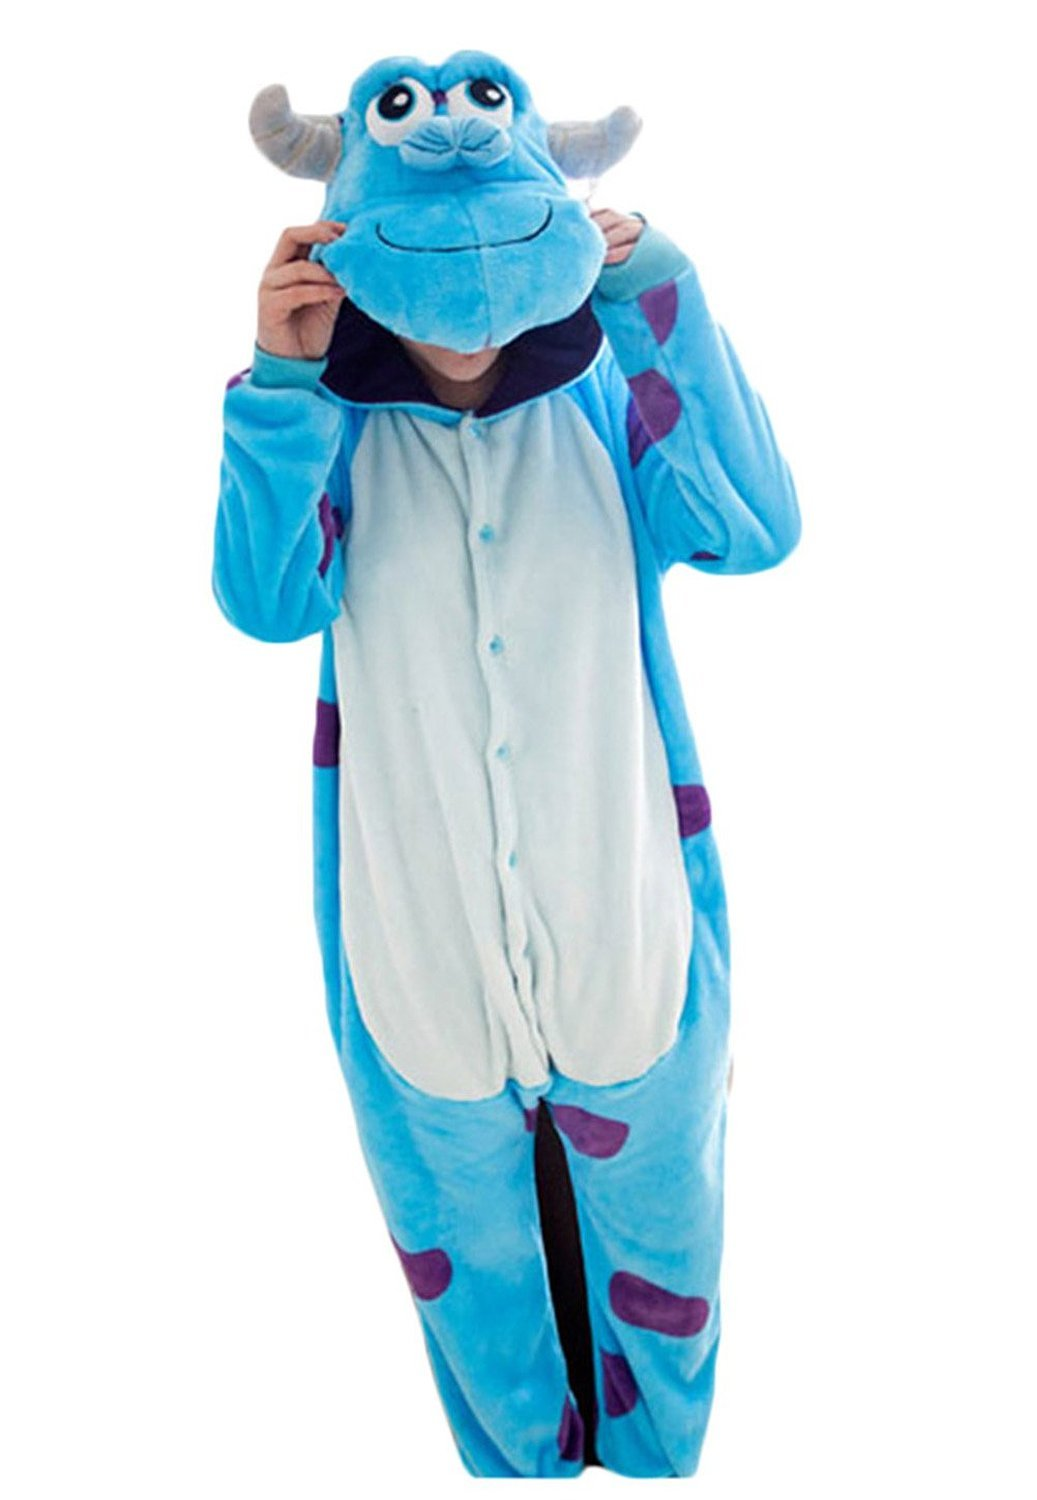 Women Men Sulley Unisex Adult Animal Sleep Suit Cosplay Kigurumi Costume Pajamas Outfit Costume Nightclothes Onesies Clothing Pajamas Tracksuit